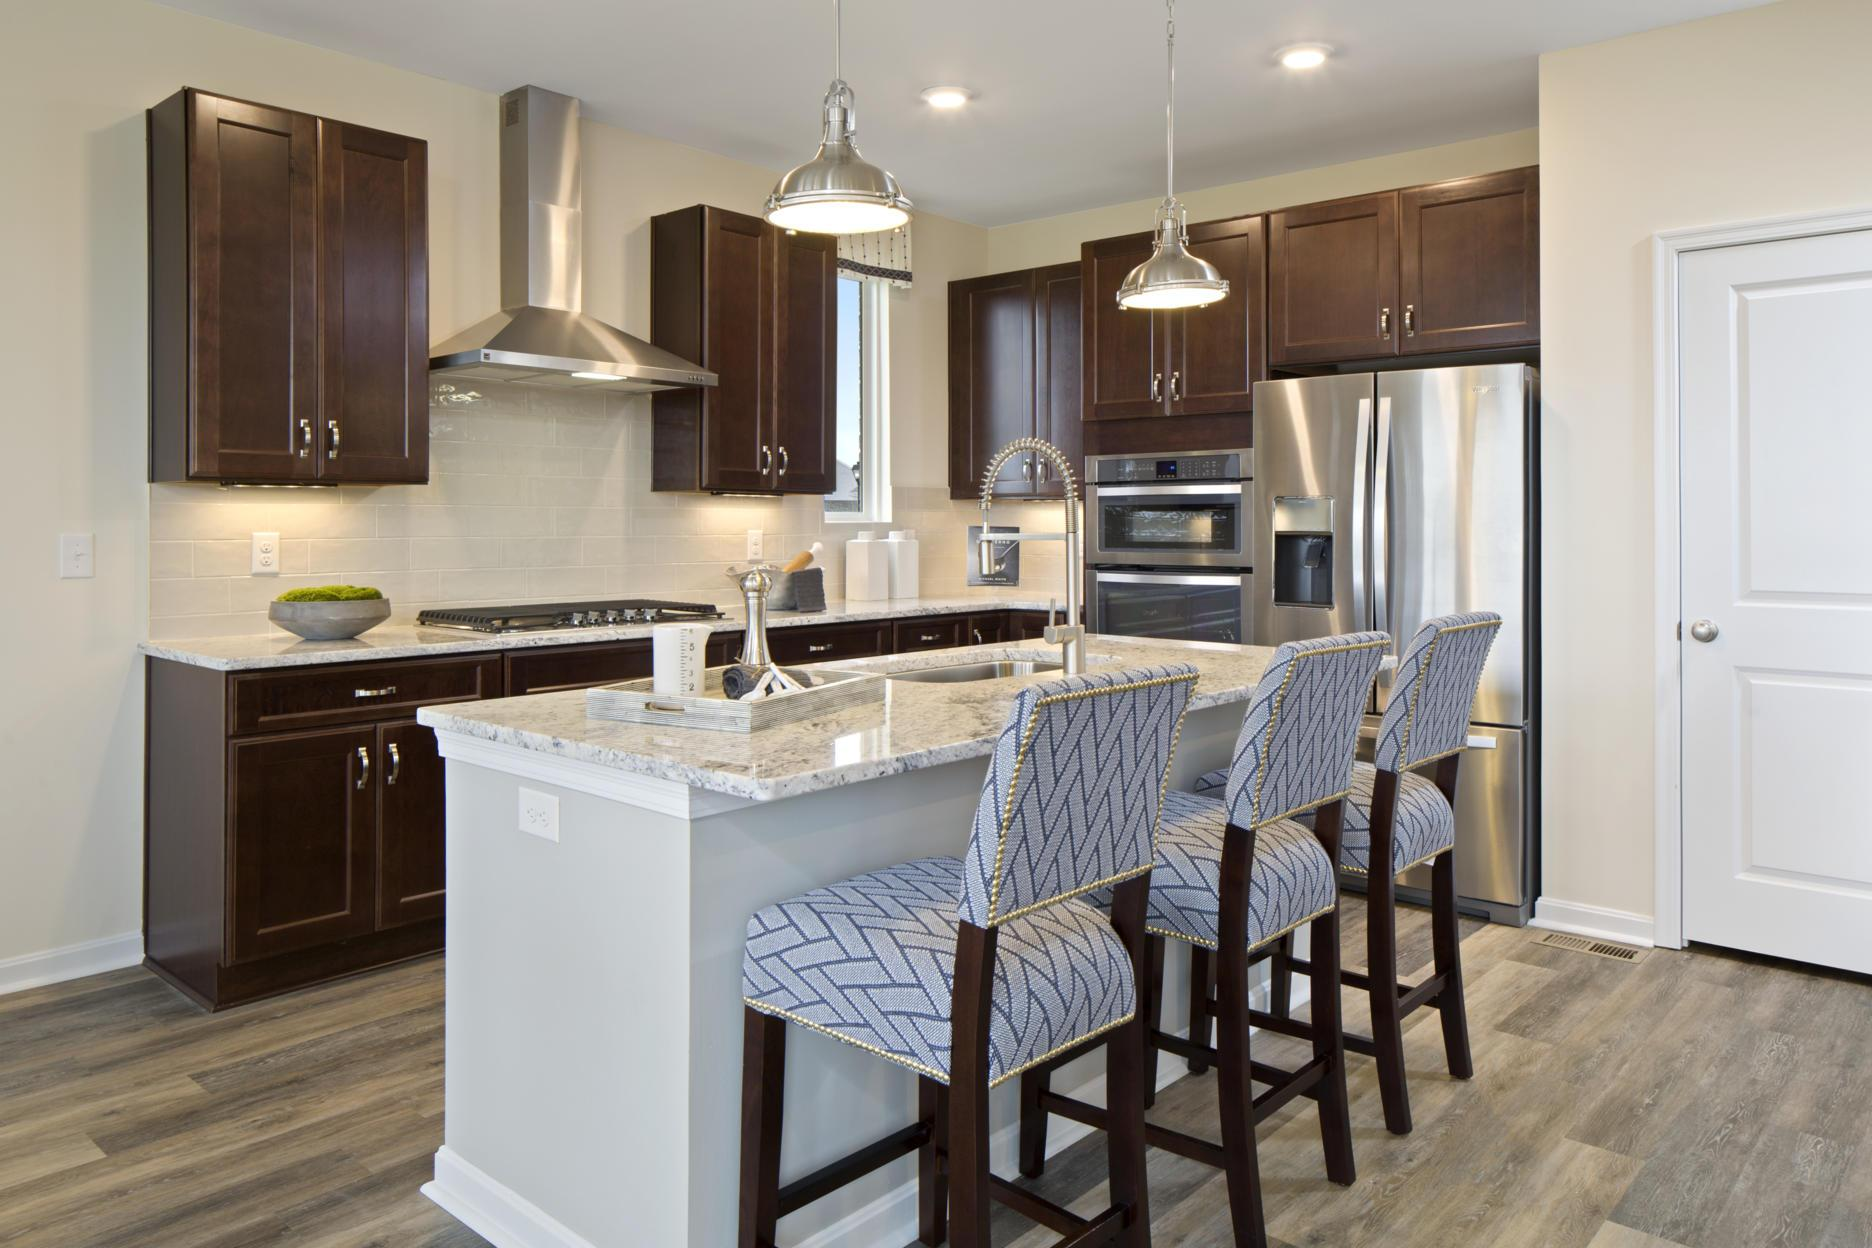 Kitchen featured in the Beachwood By Drees Homes in Cincinnati, KY